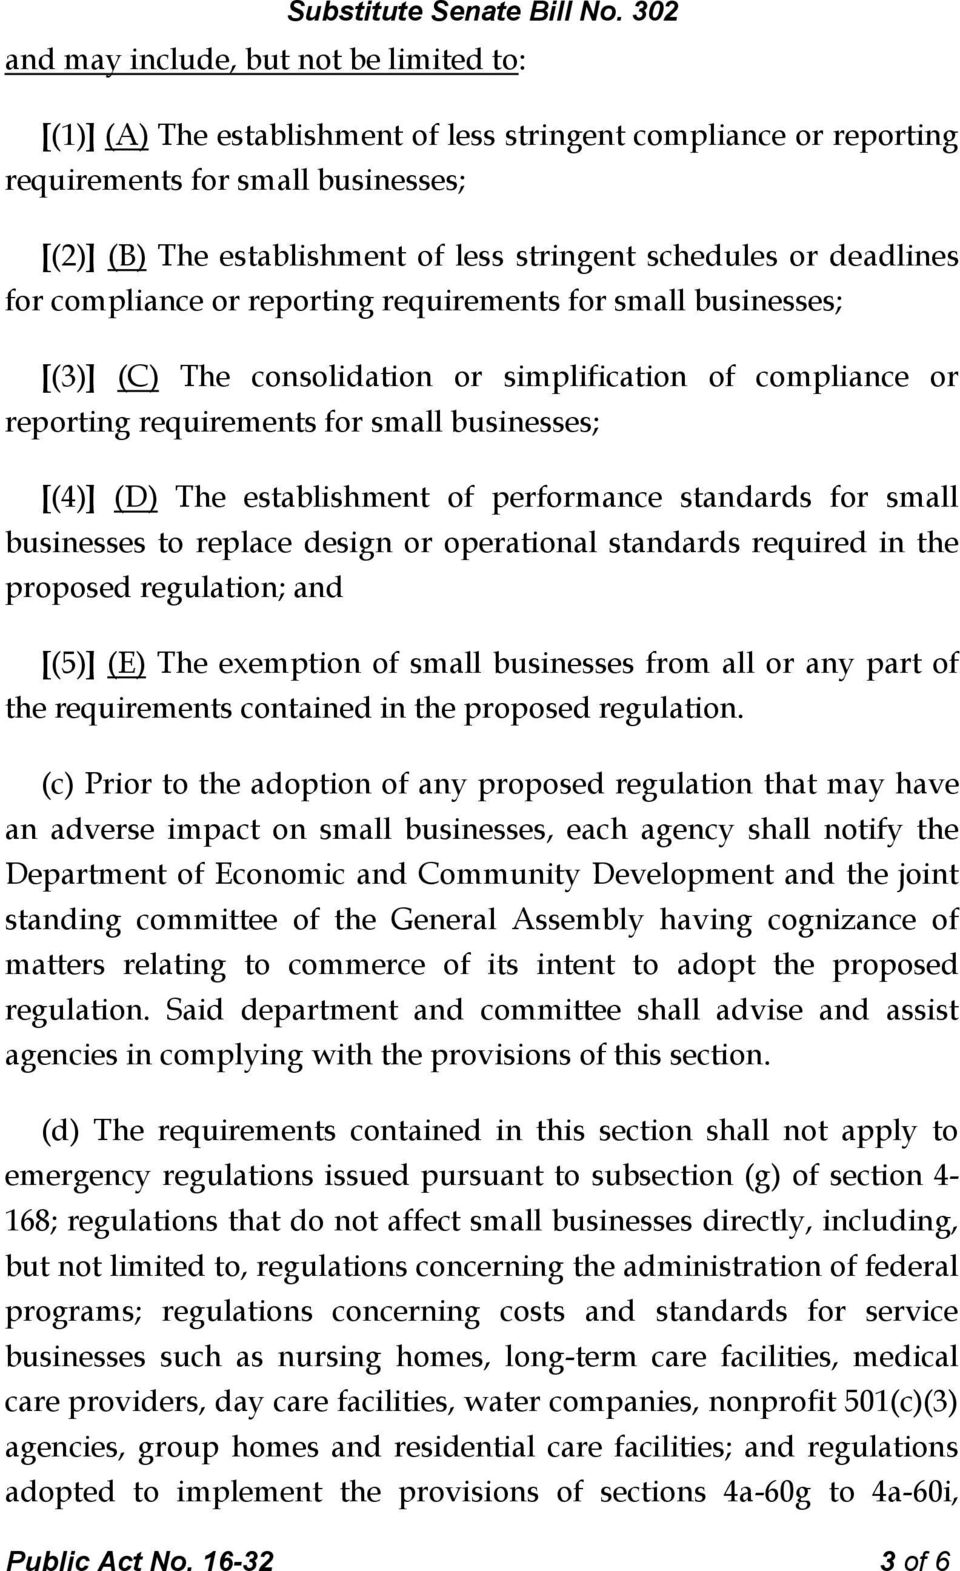 (D) The establishment of performance standards for small businesses to replace design or operational standards required in the proposed regulation; and [(5)] (E) The exemption of small businesses